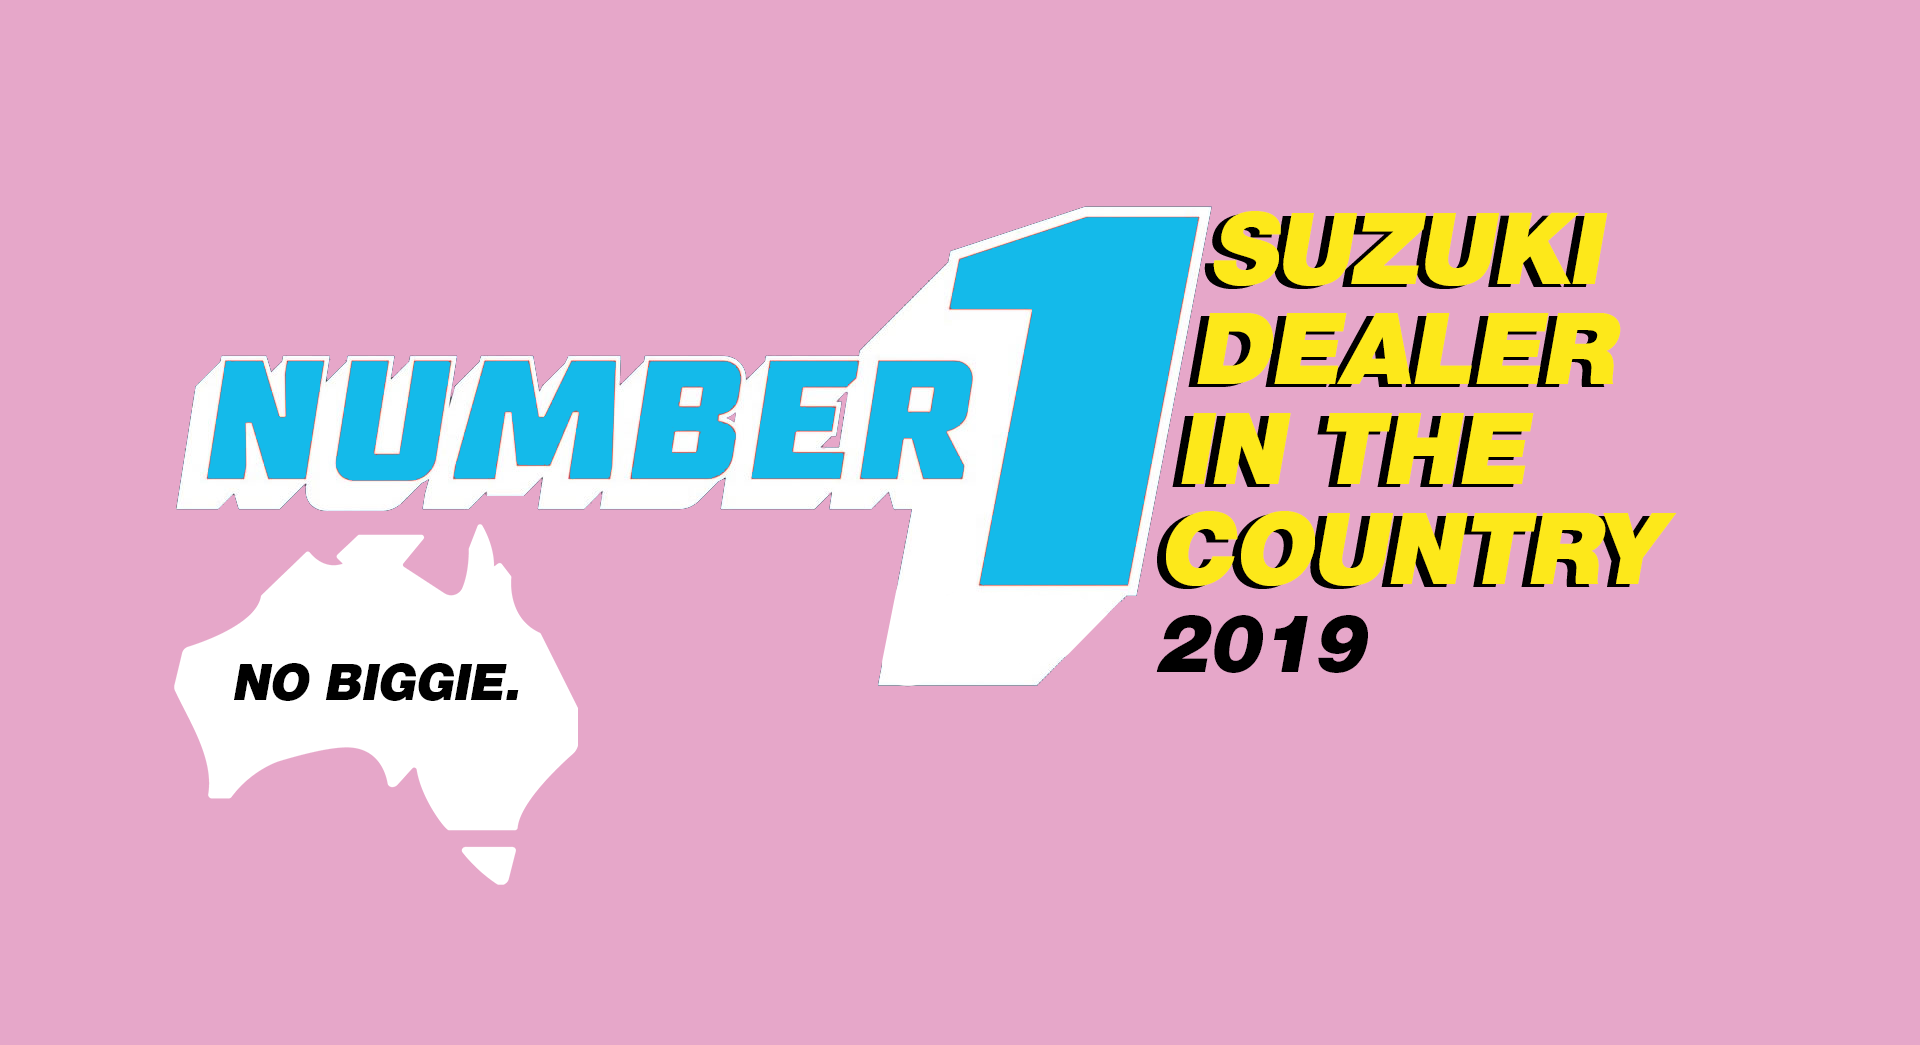 Number 1 Suzuki Dealership in Australia Perth 2019